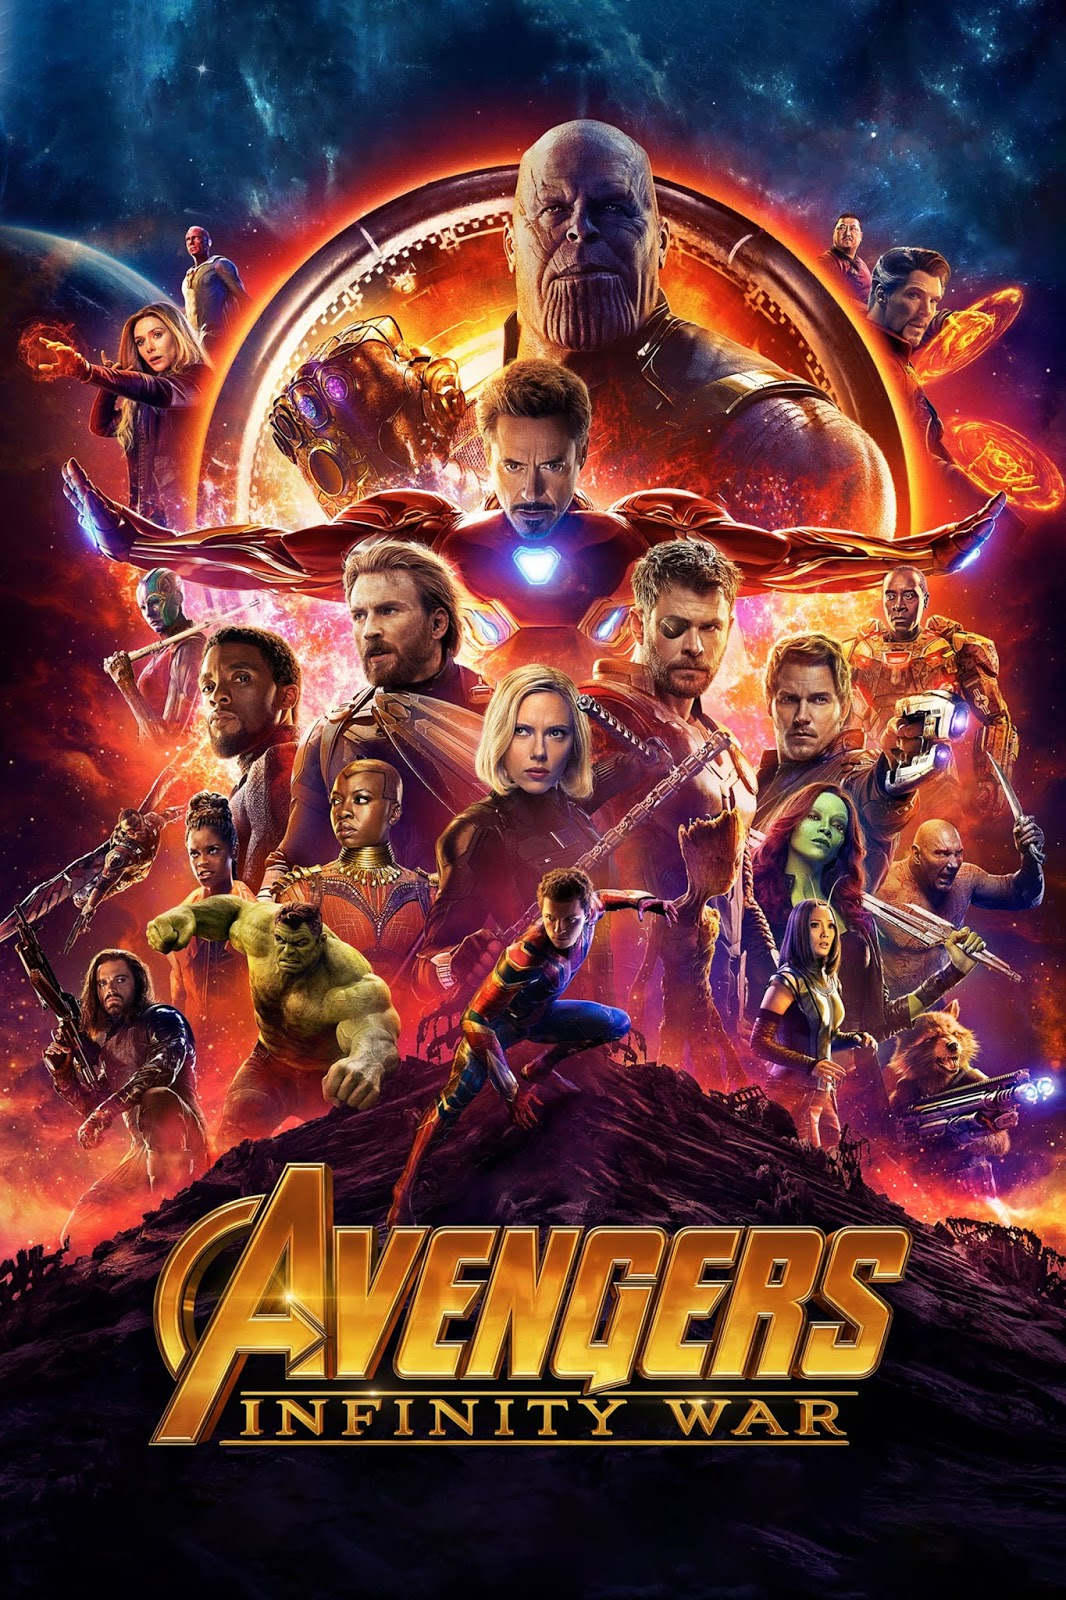 Download Avengers: Infinity War 2018 1080p/720p BluRay | Alt Plus